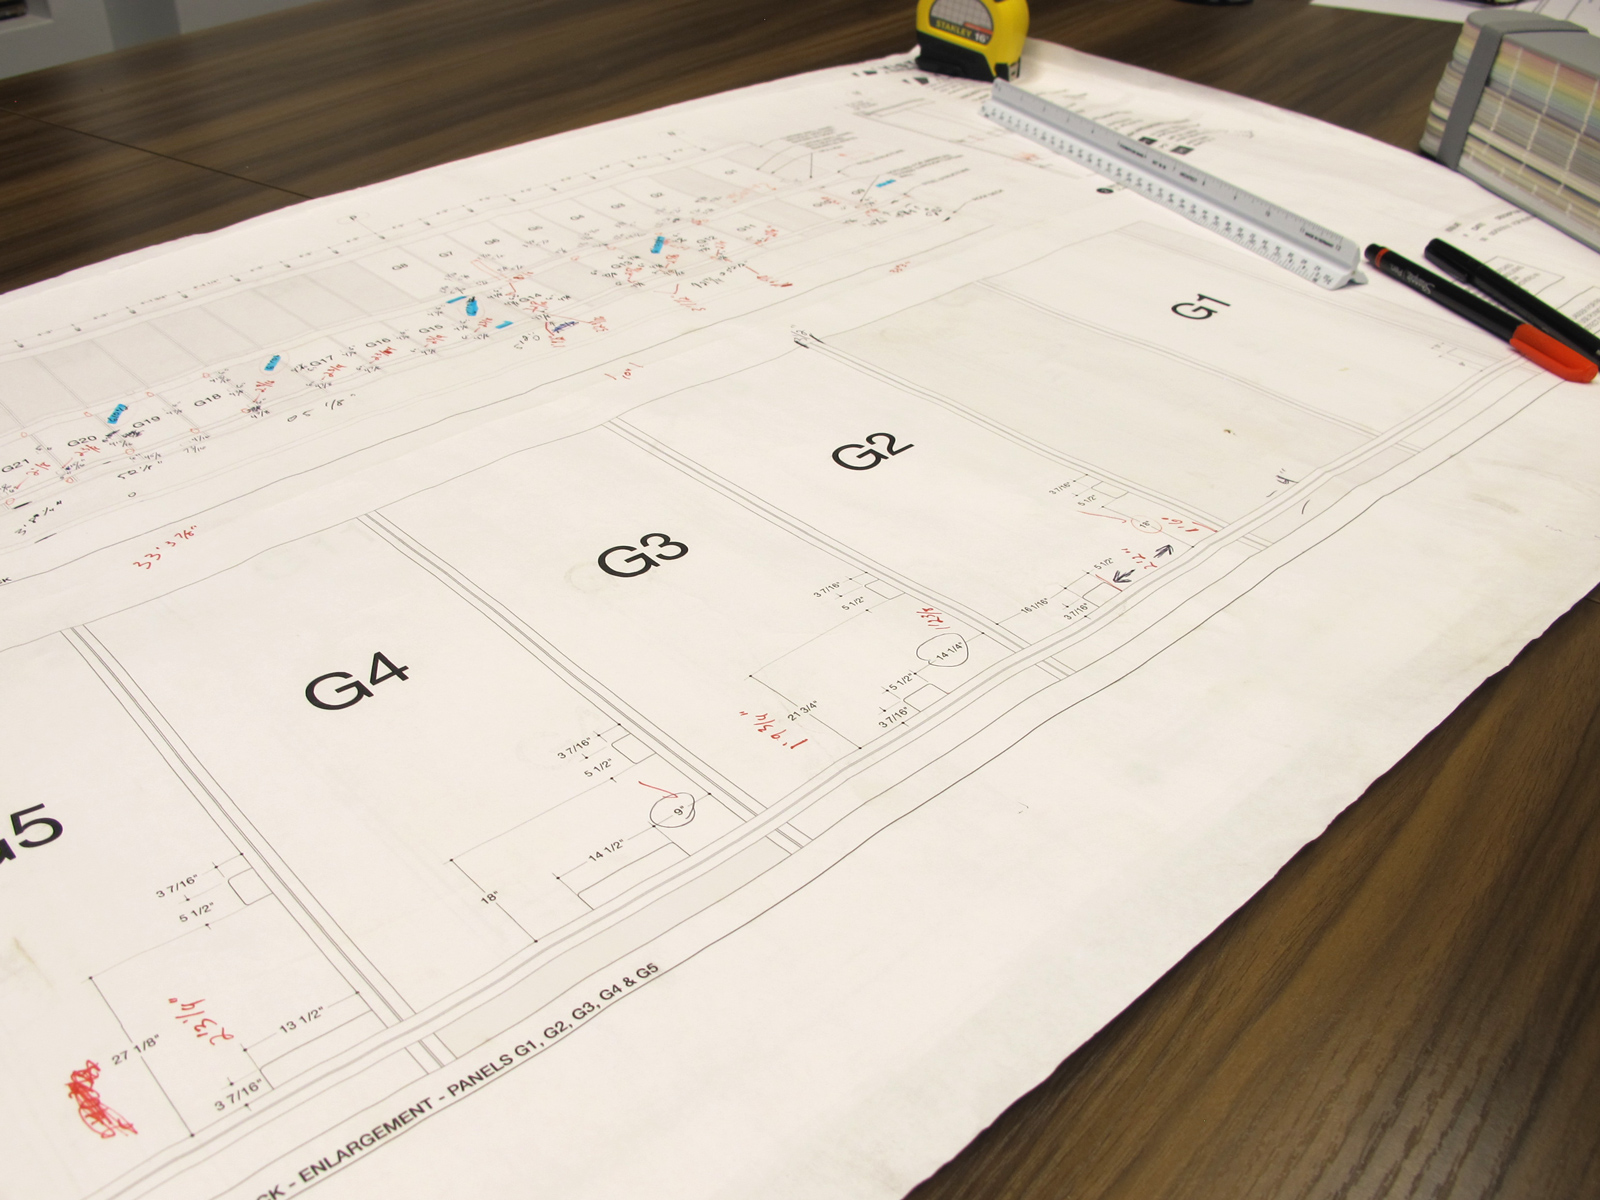 Project management construction drawings unrolled on table top